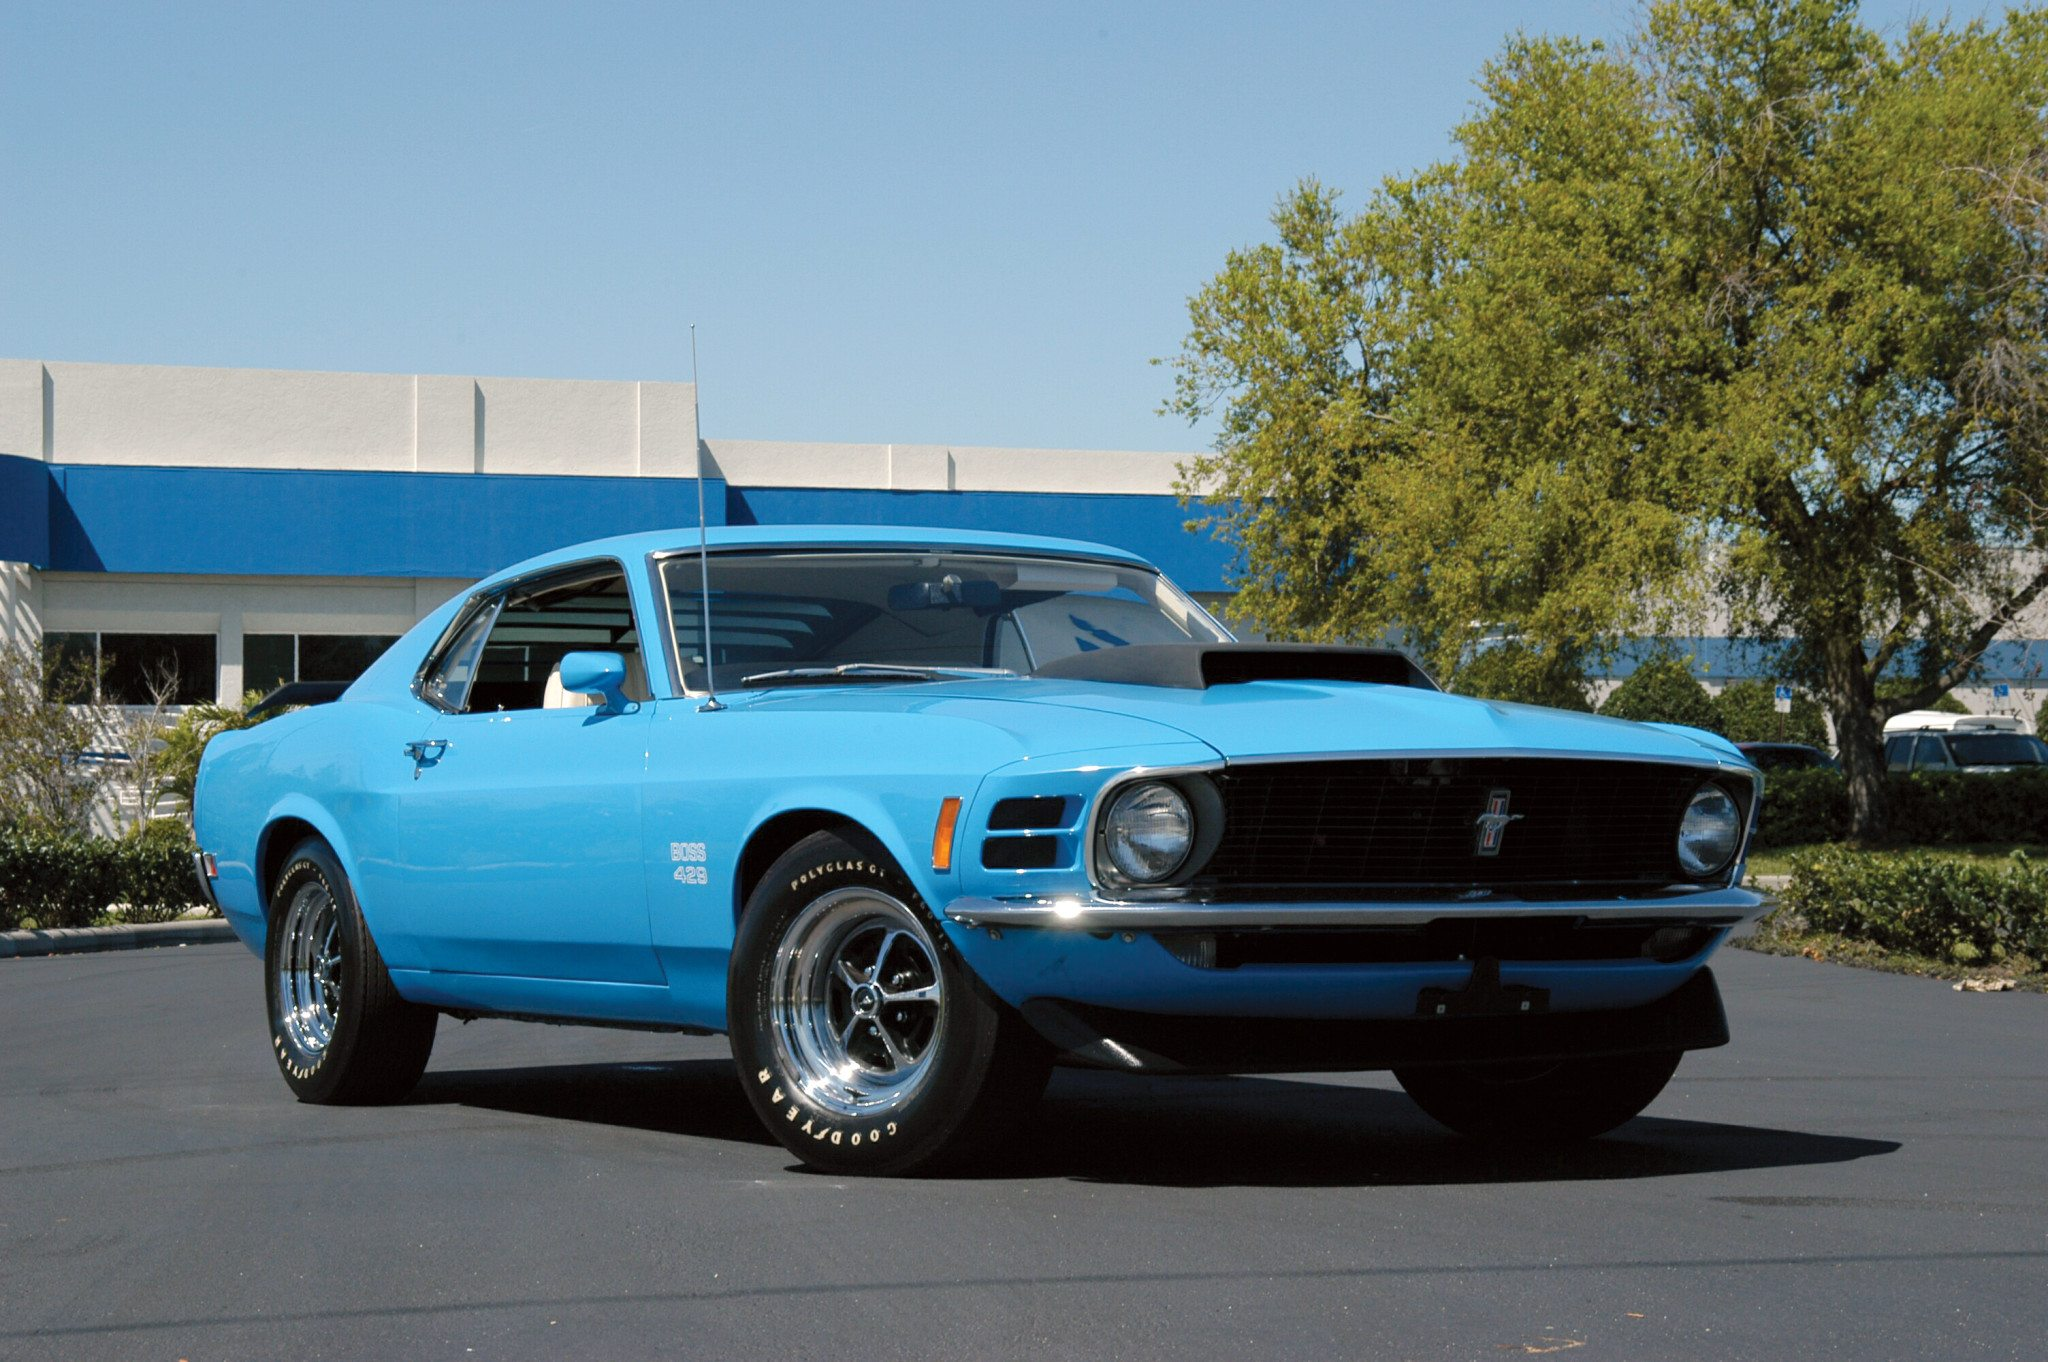 ford 39 s boss 302 boss 429 mustangs heacock classic insurance. Black Bedroom Furniture Sets. Home Design Ideas